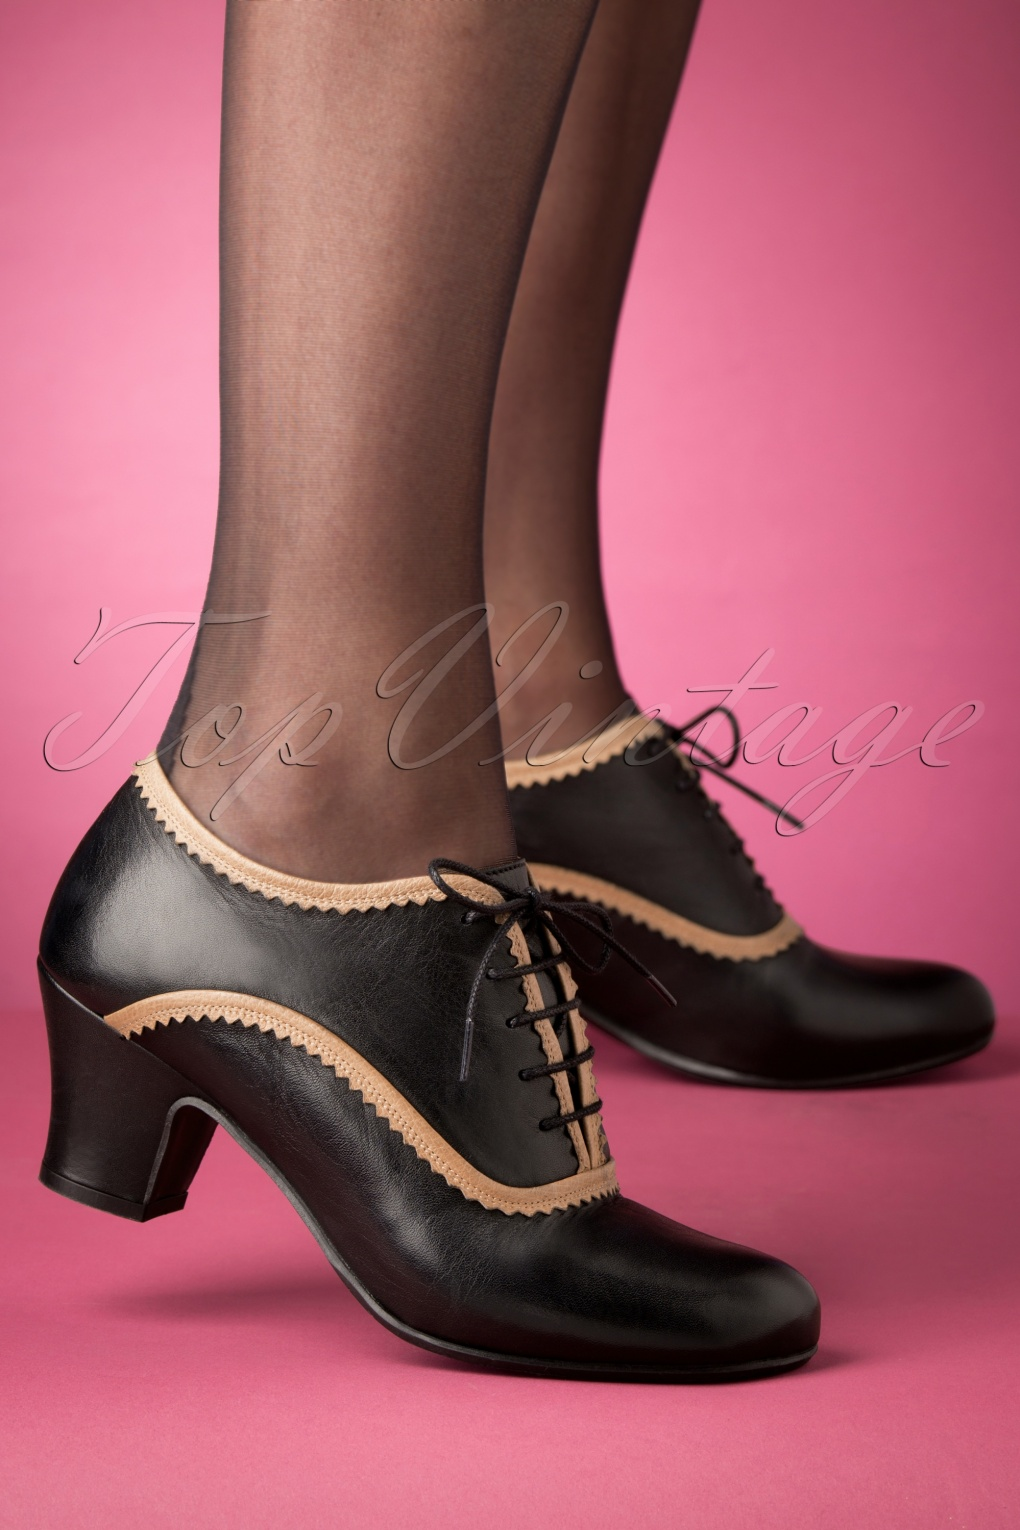 Women's Vintage Shoes & Boots to Buy 40s Farren Shoe Booties in Black £127.40 AT vintagedancer.com